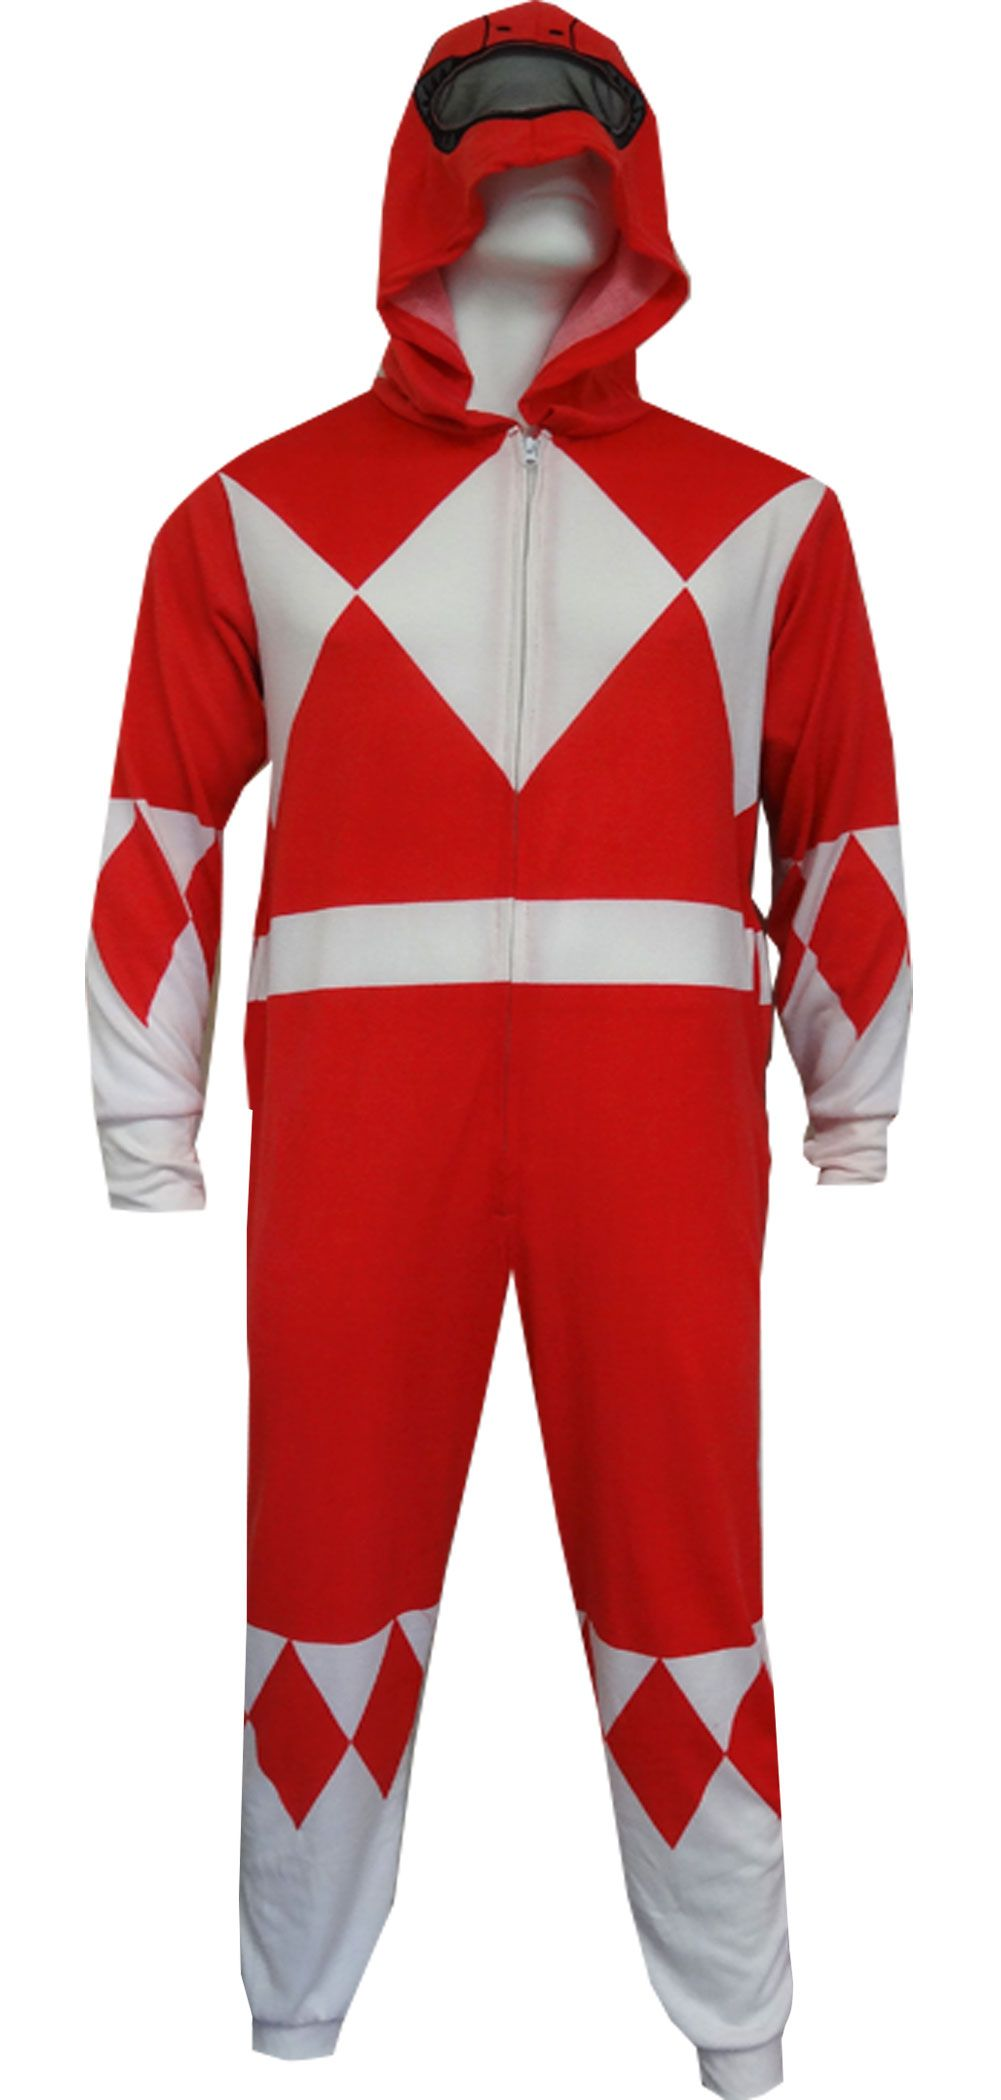 52ee132b56 Mighty Morphin Power Rangers Red Ranger Onesie Pajama